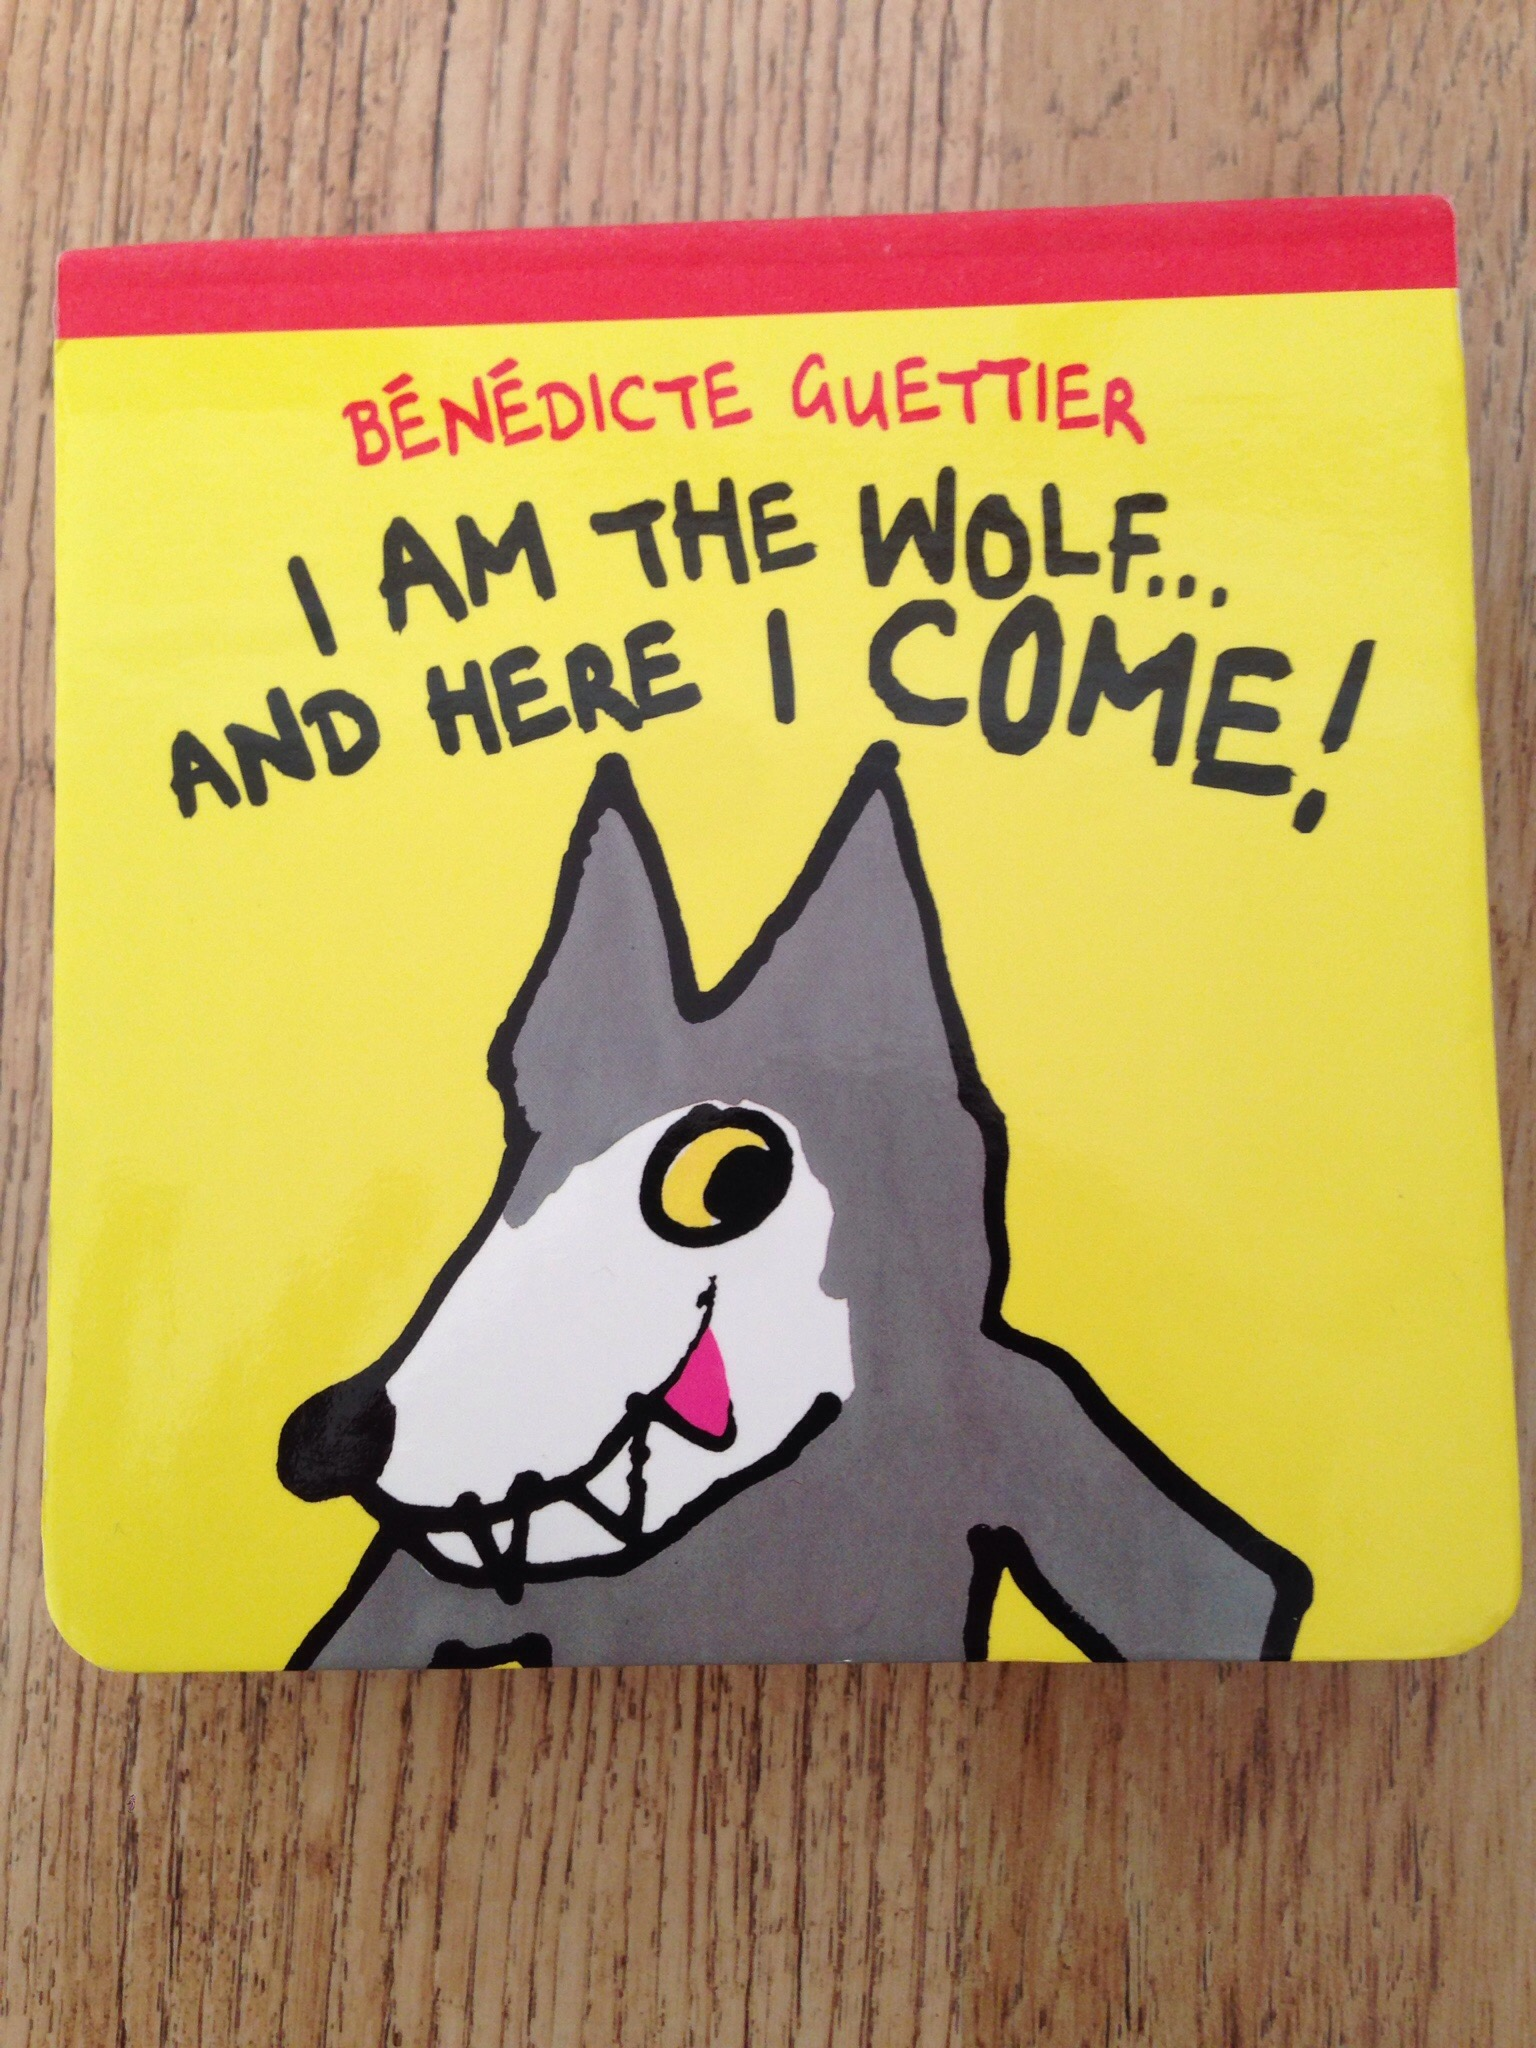 I am the wolf and here I come by benedicte guettier book review